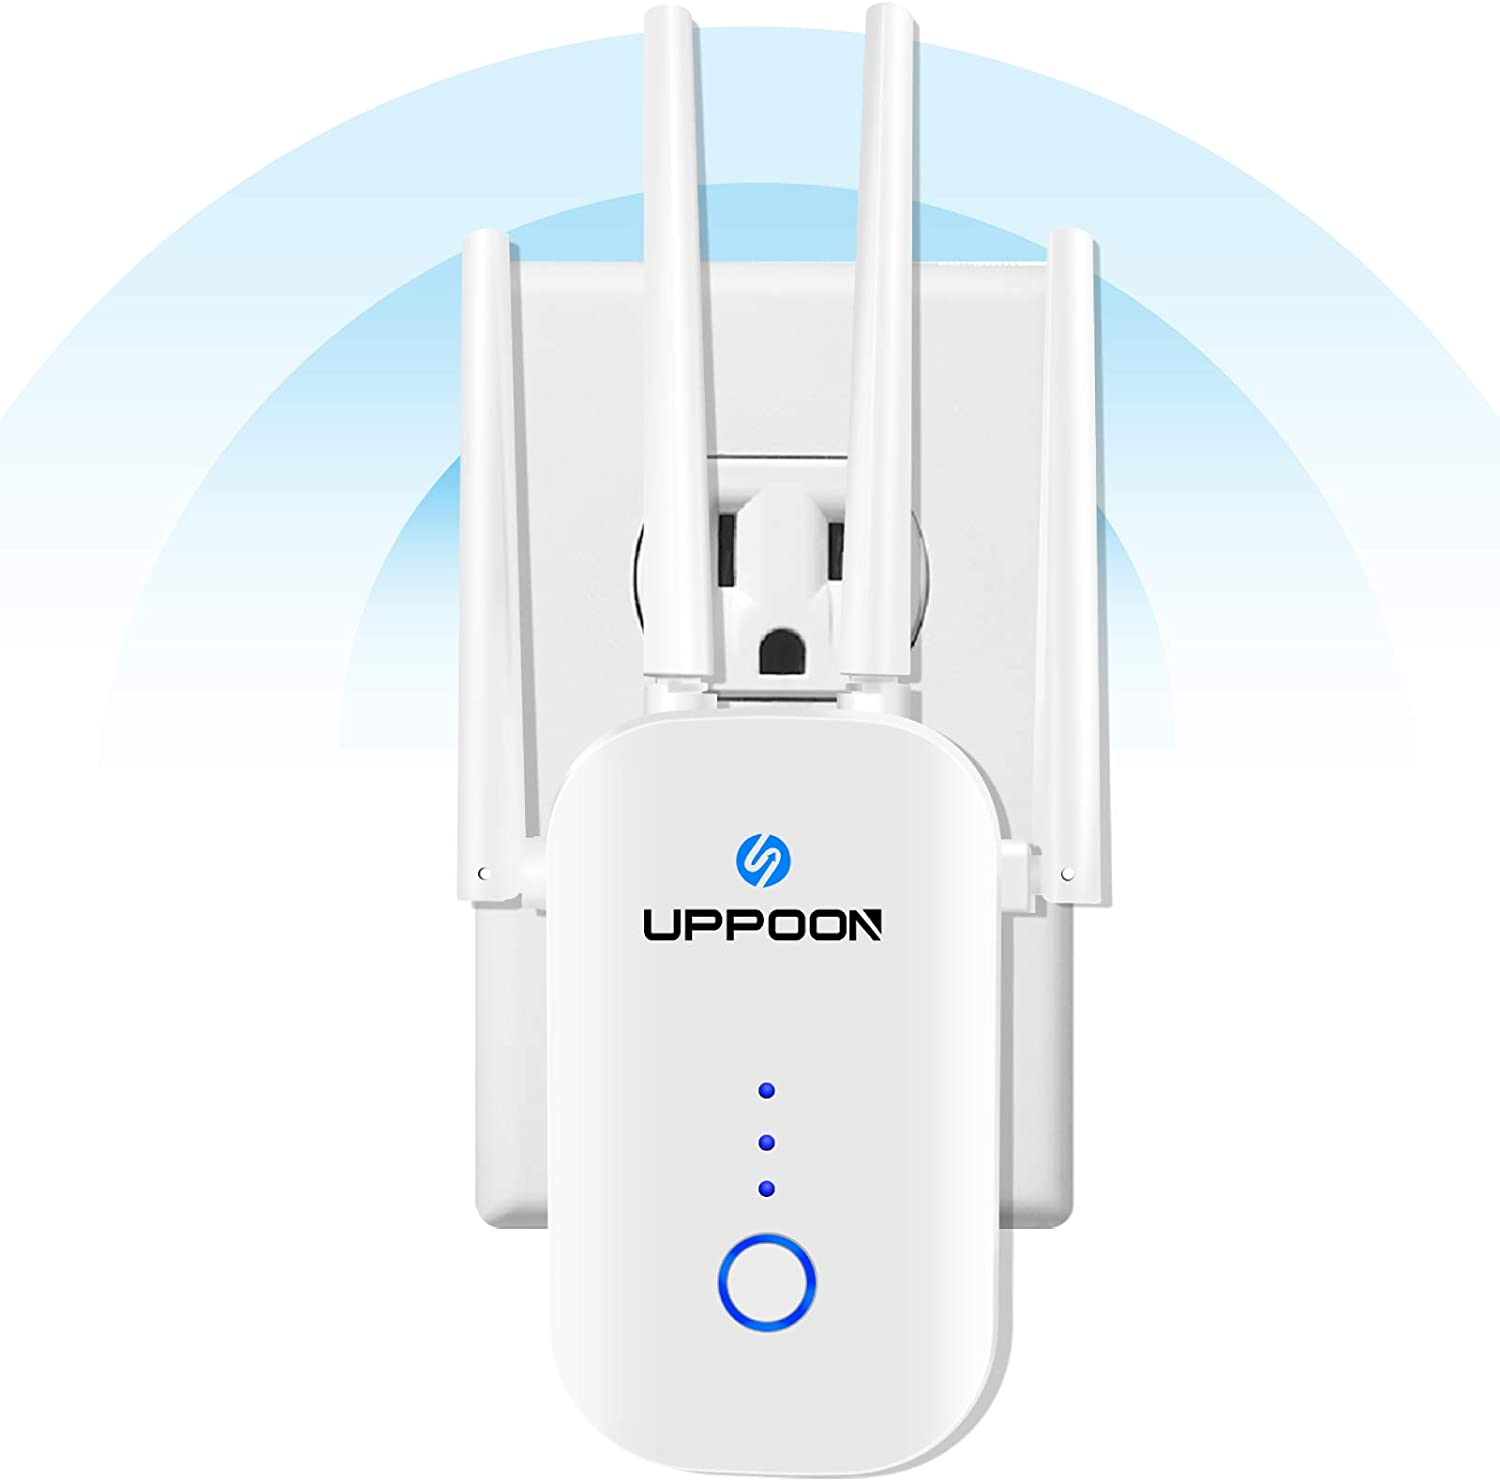 UPPOON 1200Mbps WiFi Extender Signal Booster up to 4500sq.ft, 2.4 & 5GHz Dual Band Internet Booster Amplifier, 5 Working Modes Repeater with Ethernet Port, 1-Tap Setup, Alexa Compatible